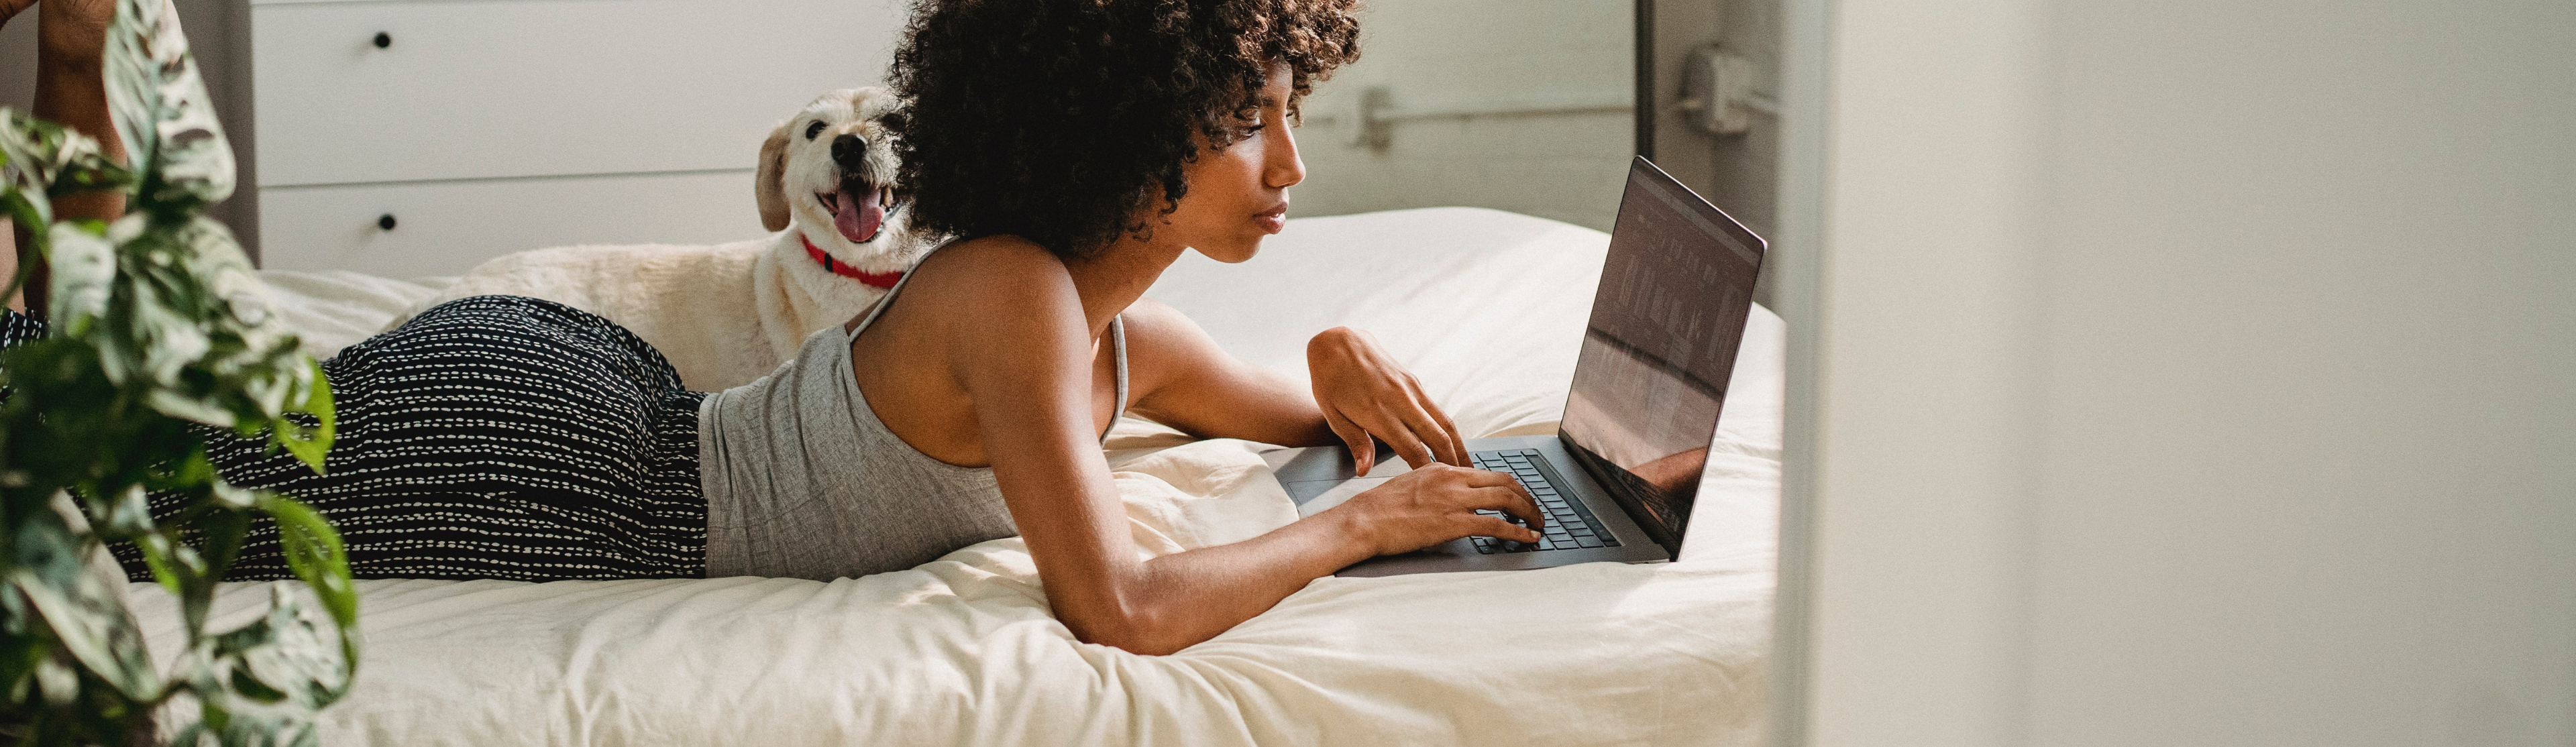 Girl laying on bed looking at laptop